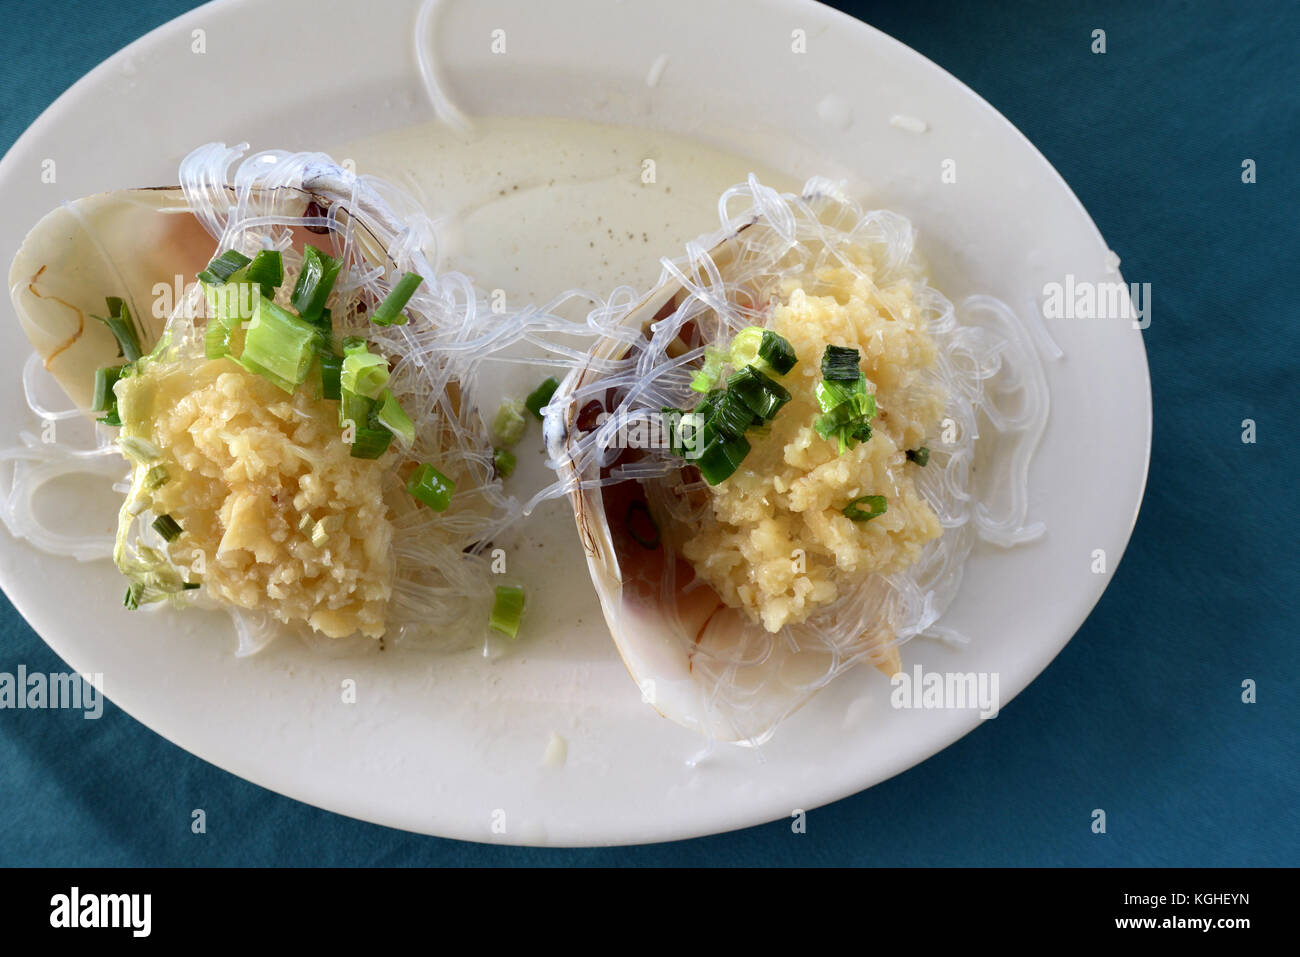 Clam with Garlic served in a seafood restaurant on Lamma island. - Stock Image